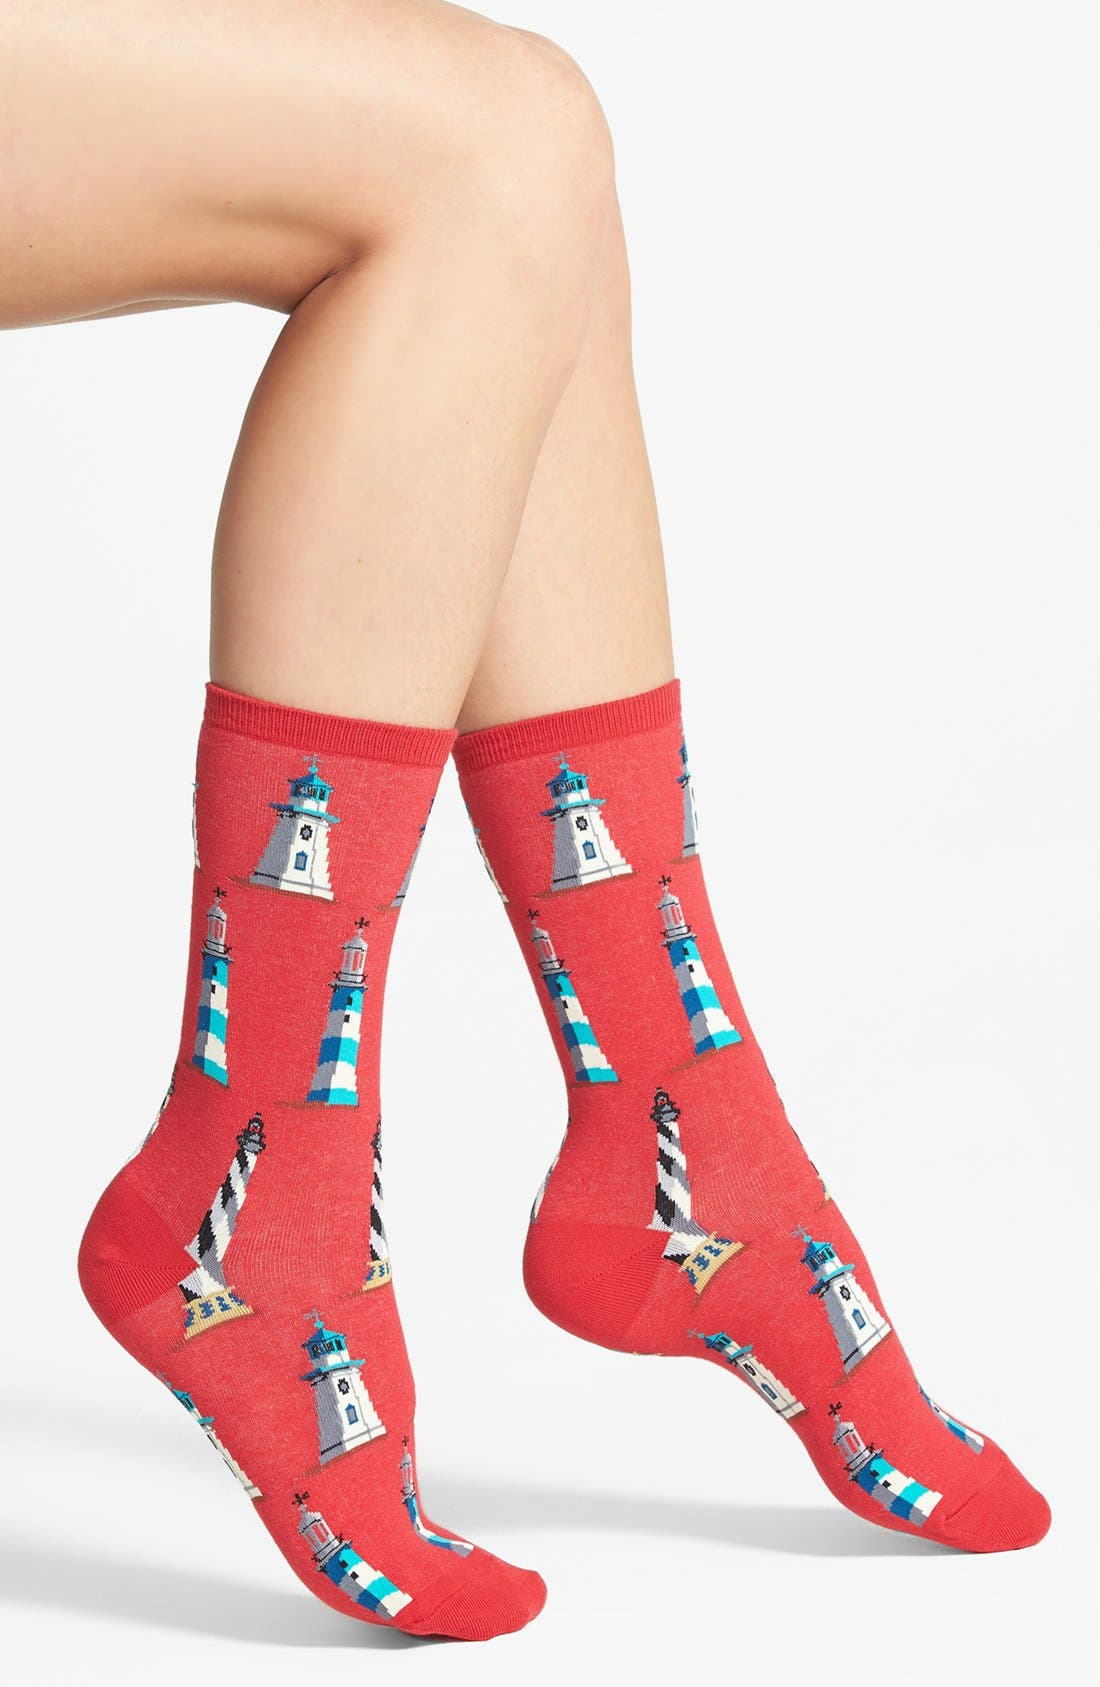 Alternate Image 1 Selected - Hot Sox 'Lighthouse' Crew Socks